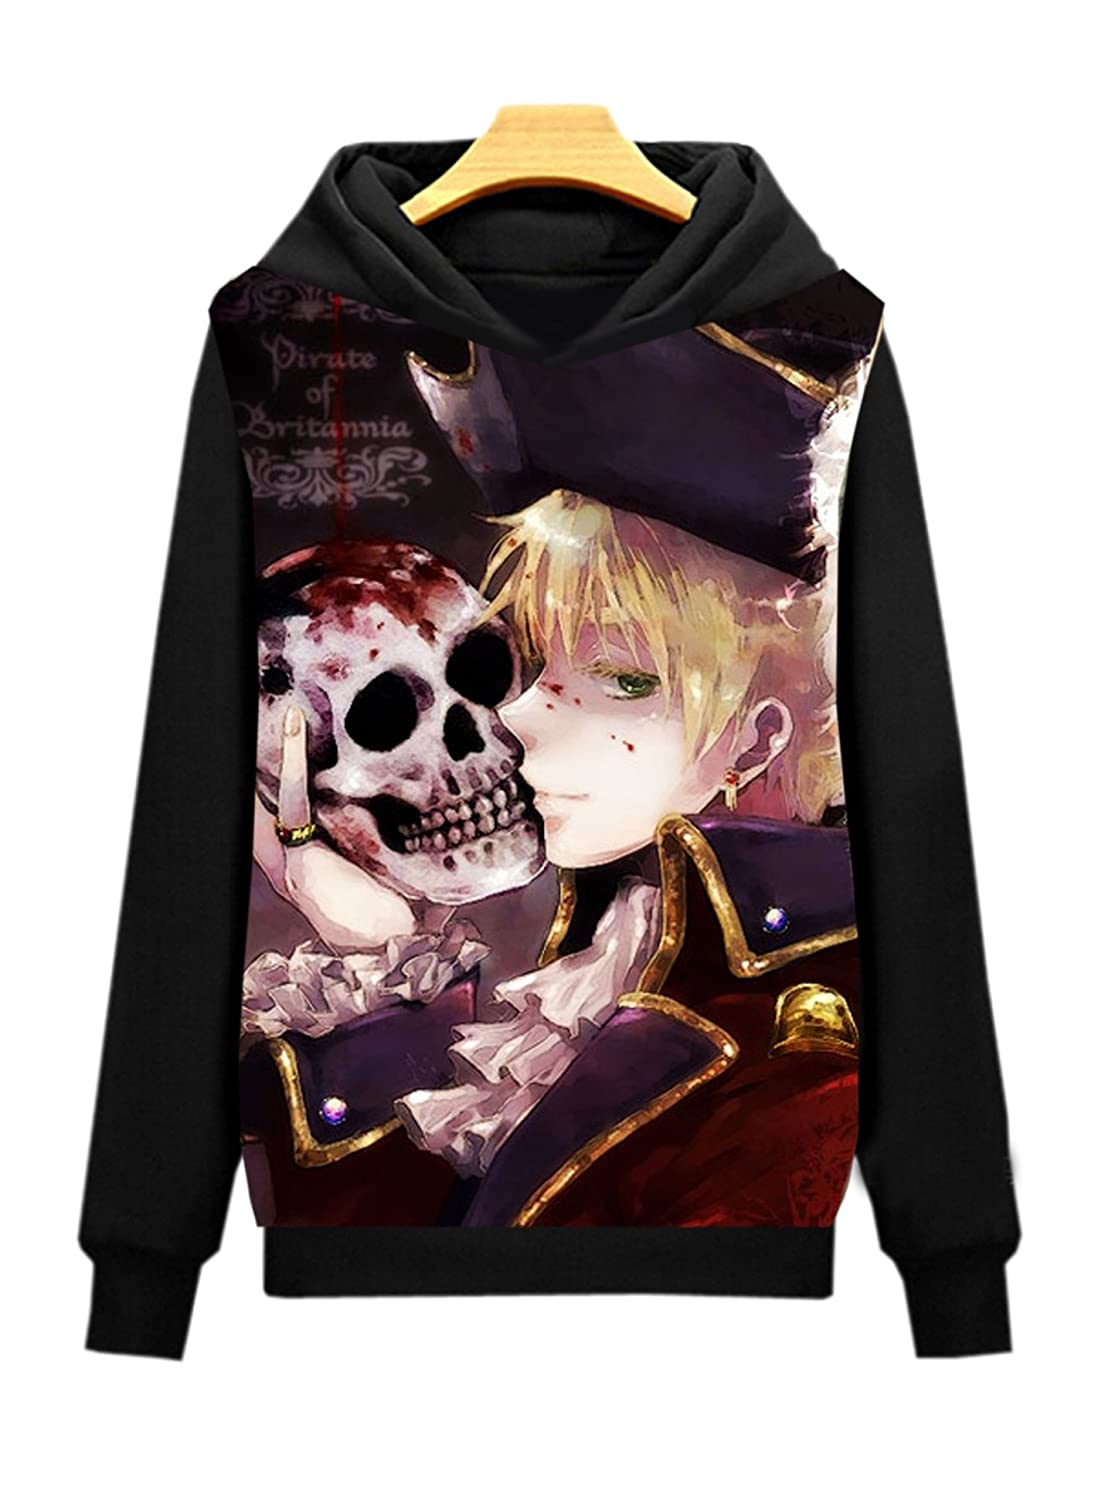 Dreamcosplay Hetalia: Axis Powers Arthur Kirkland Pullover Hoodies (Asian Size L)